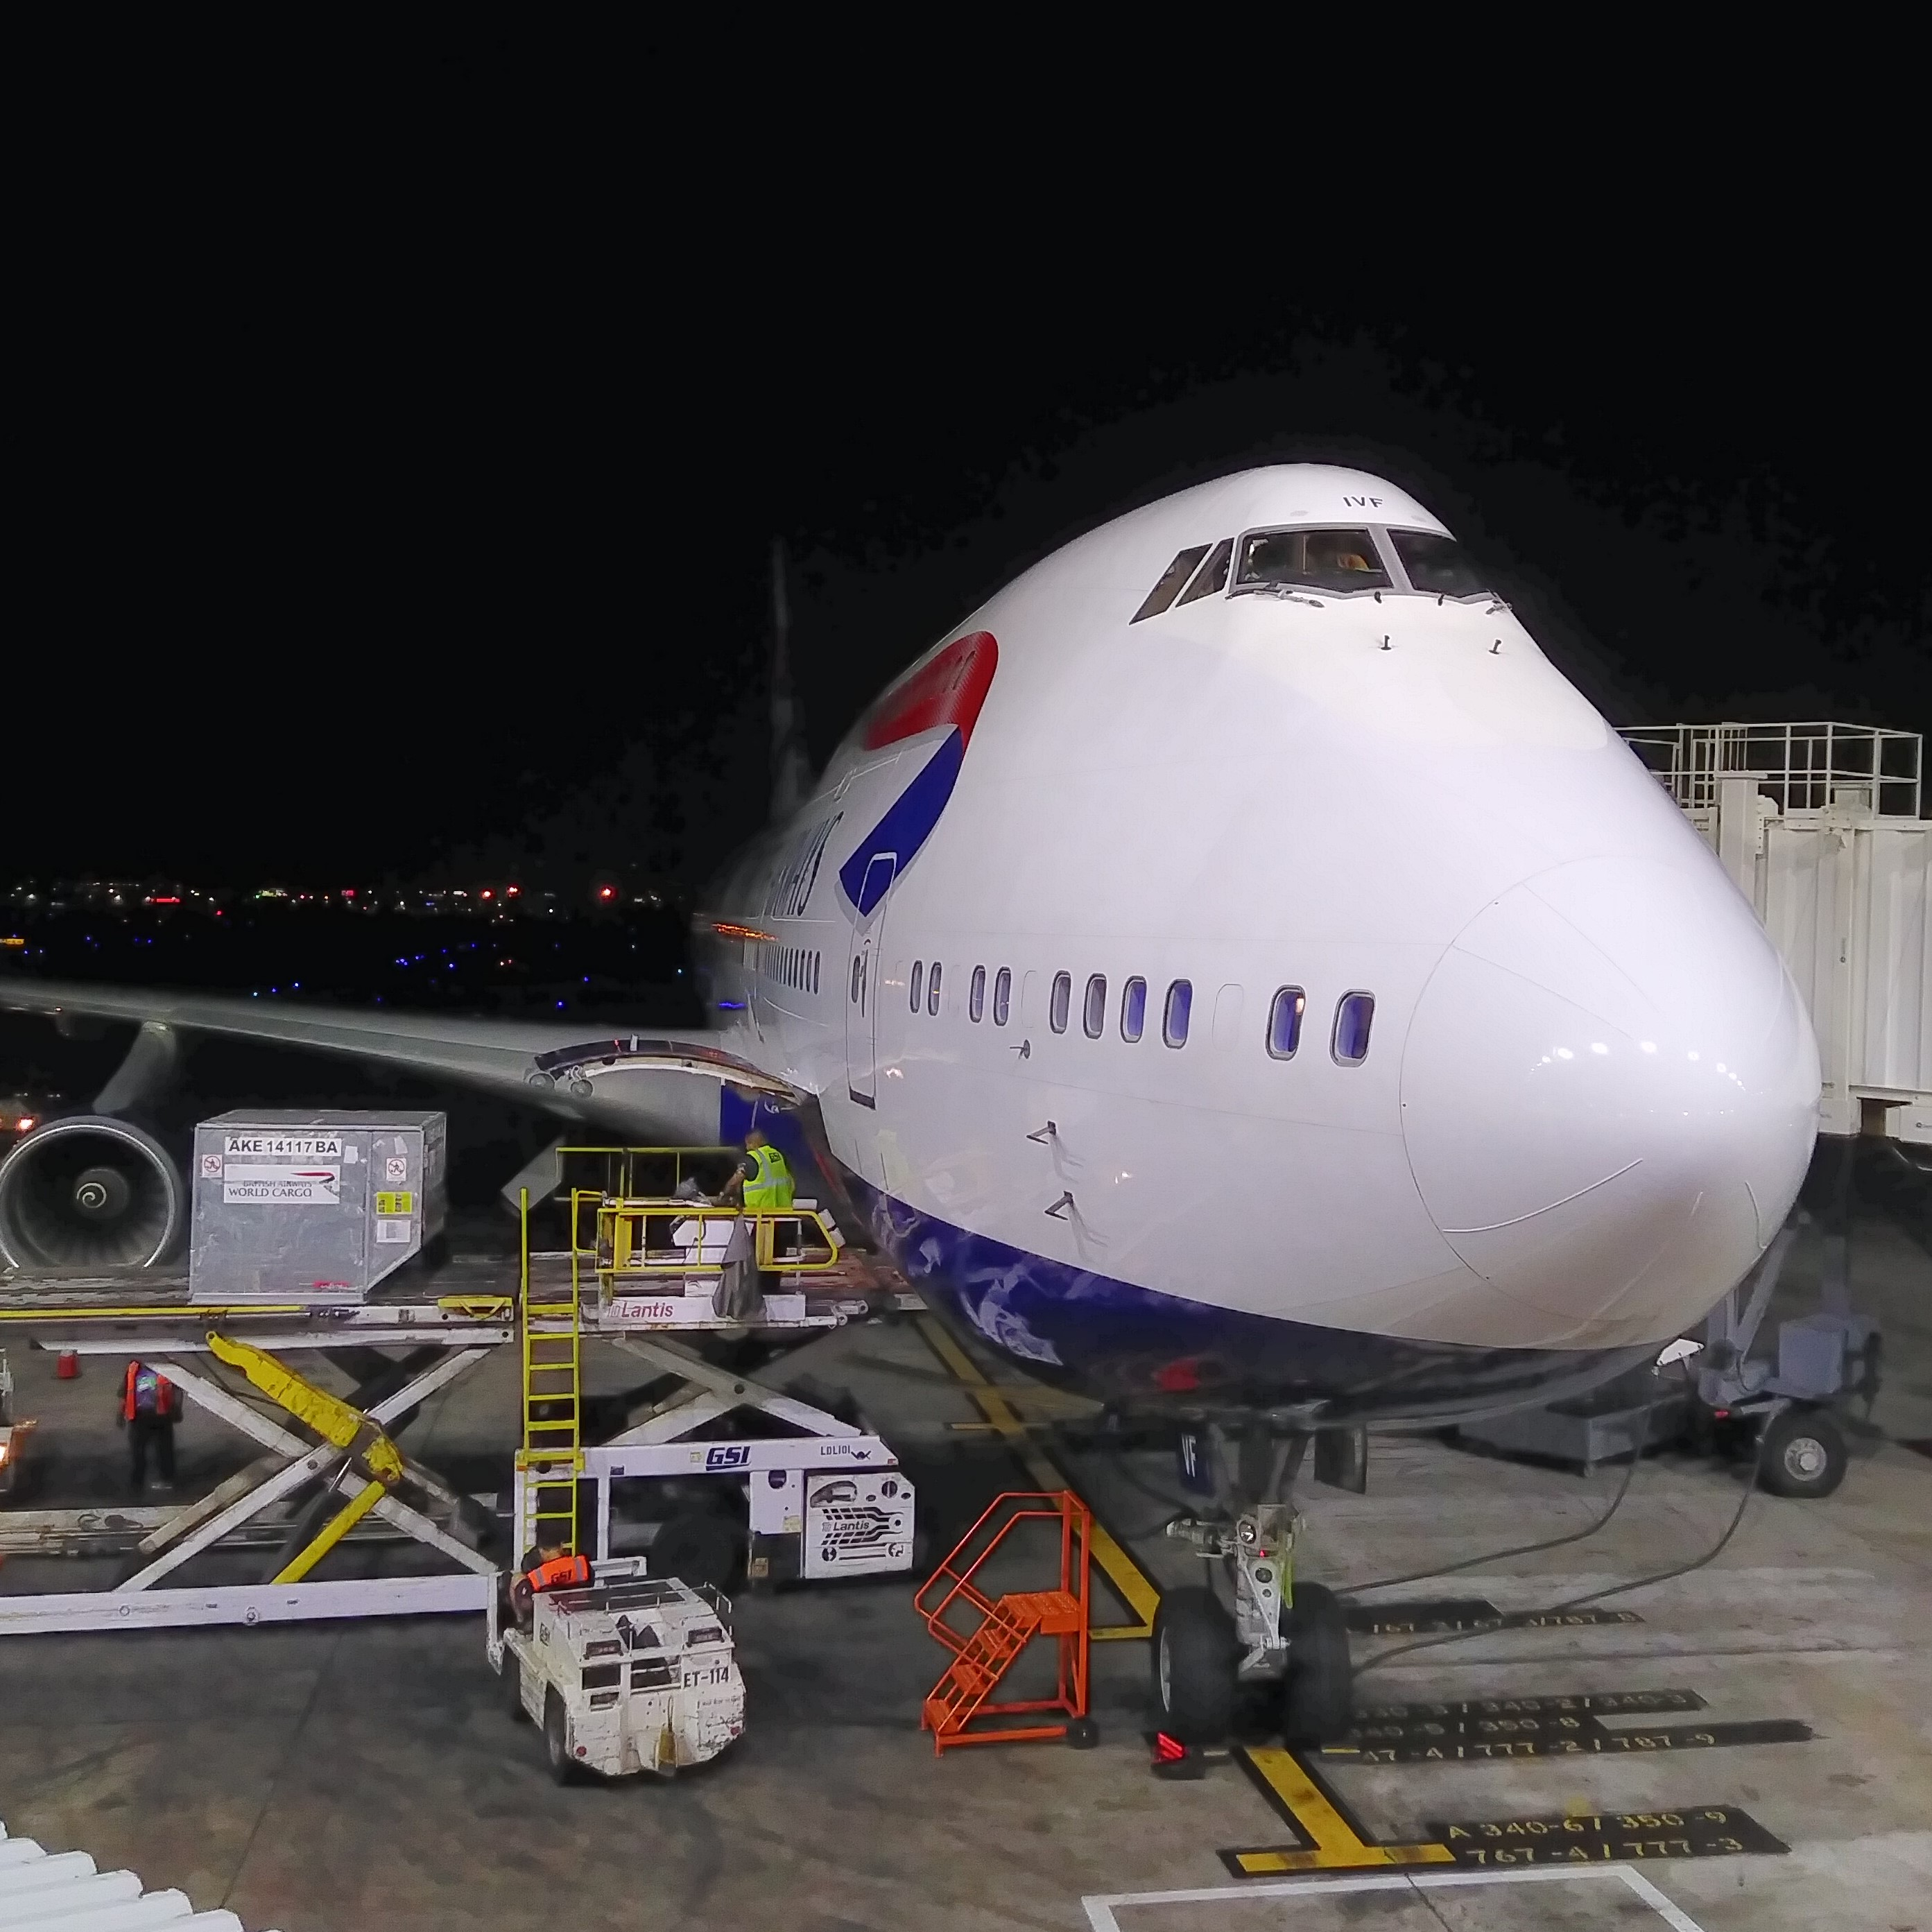 A British Airways Boeing 747 Jumbo Jet on the stand at Chicago's O'Hare airport, waiting to take me back to the UK. I always forget how big they are until I get up close to them.